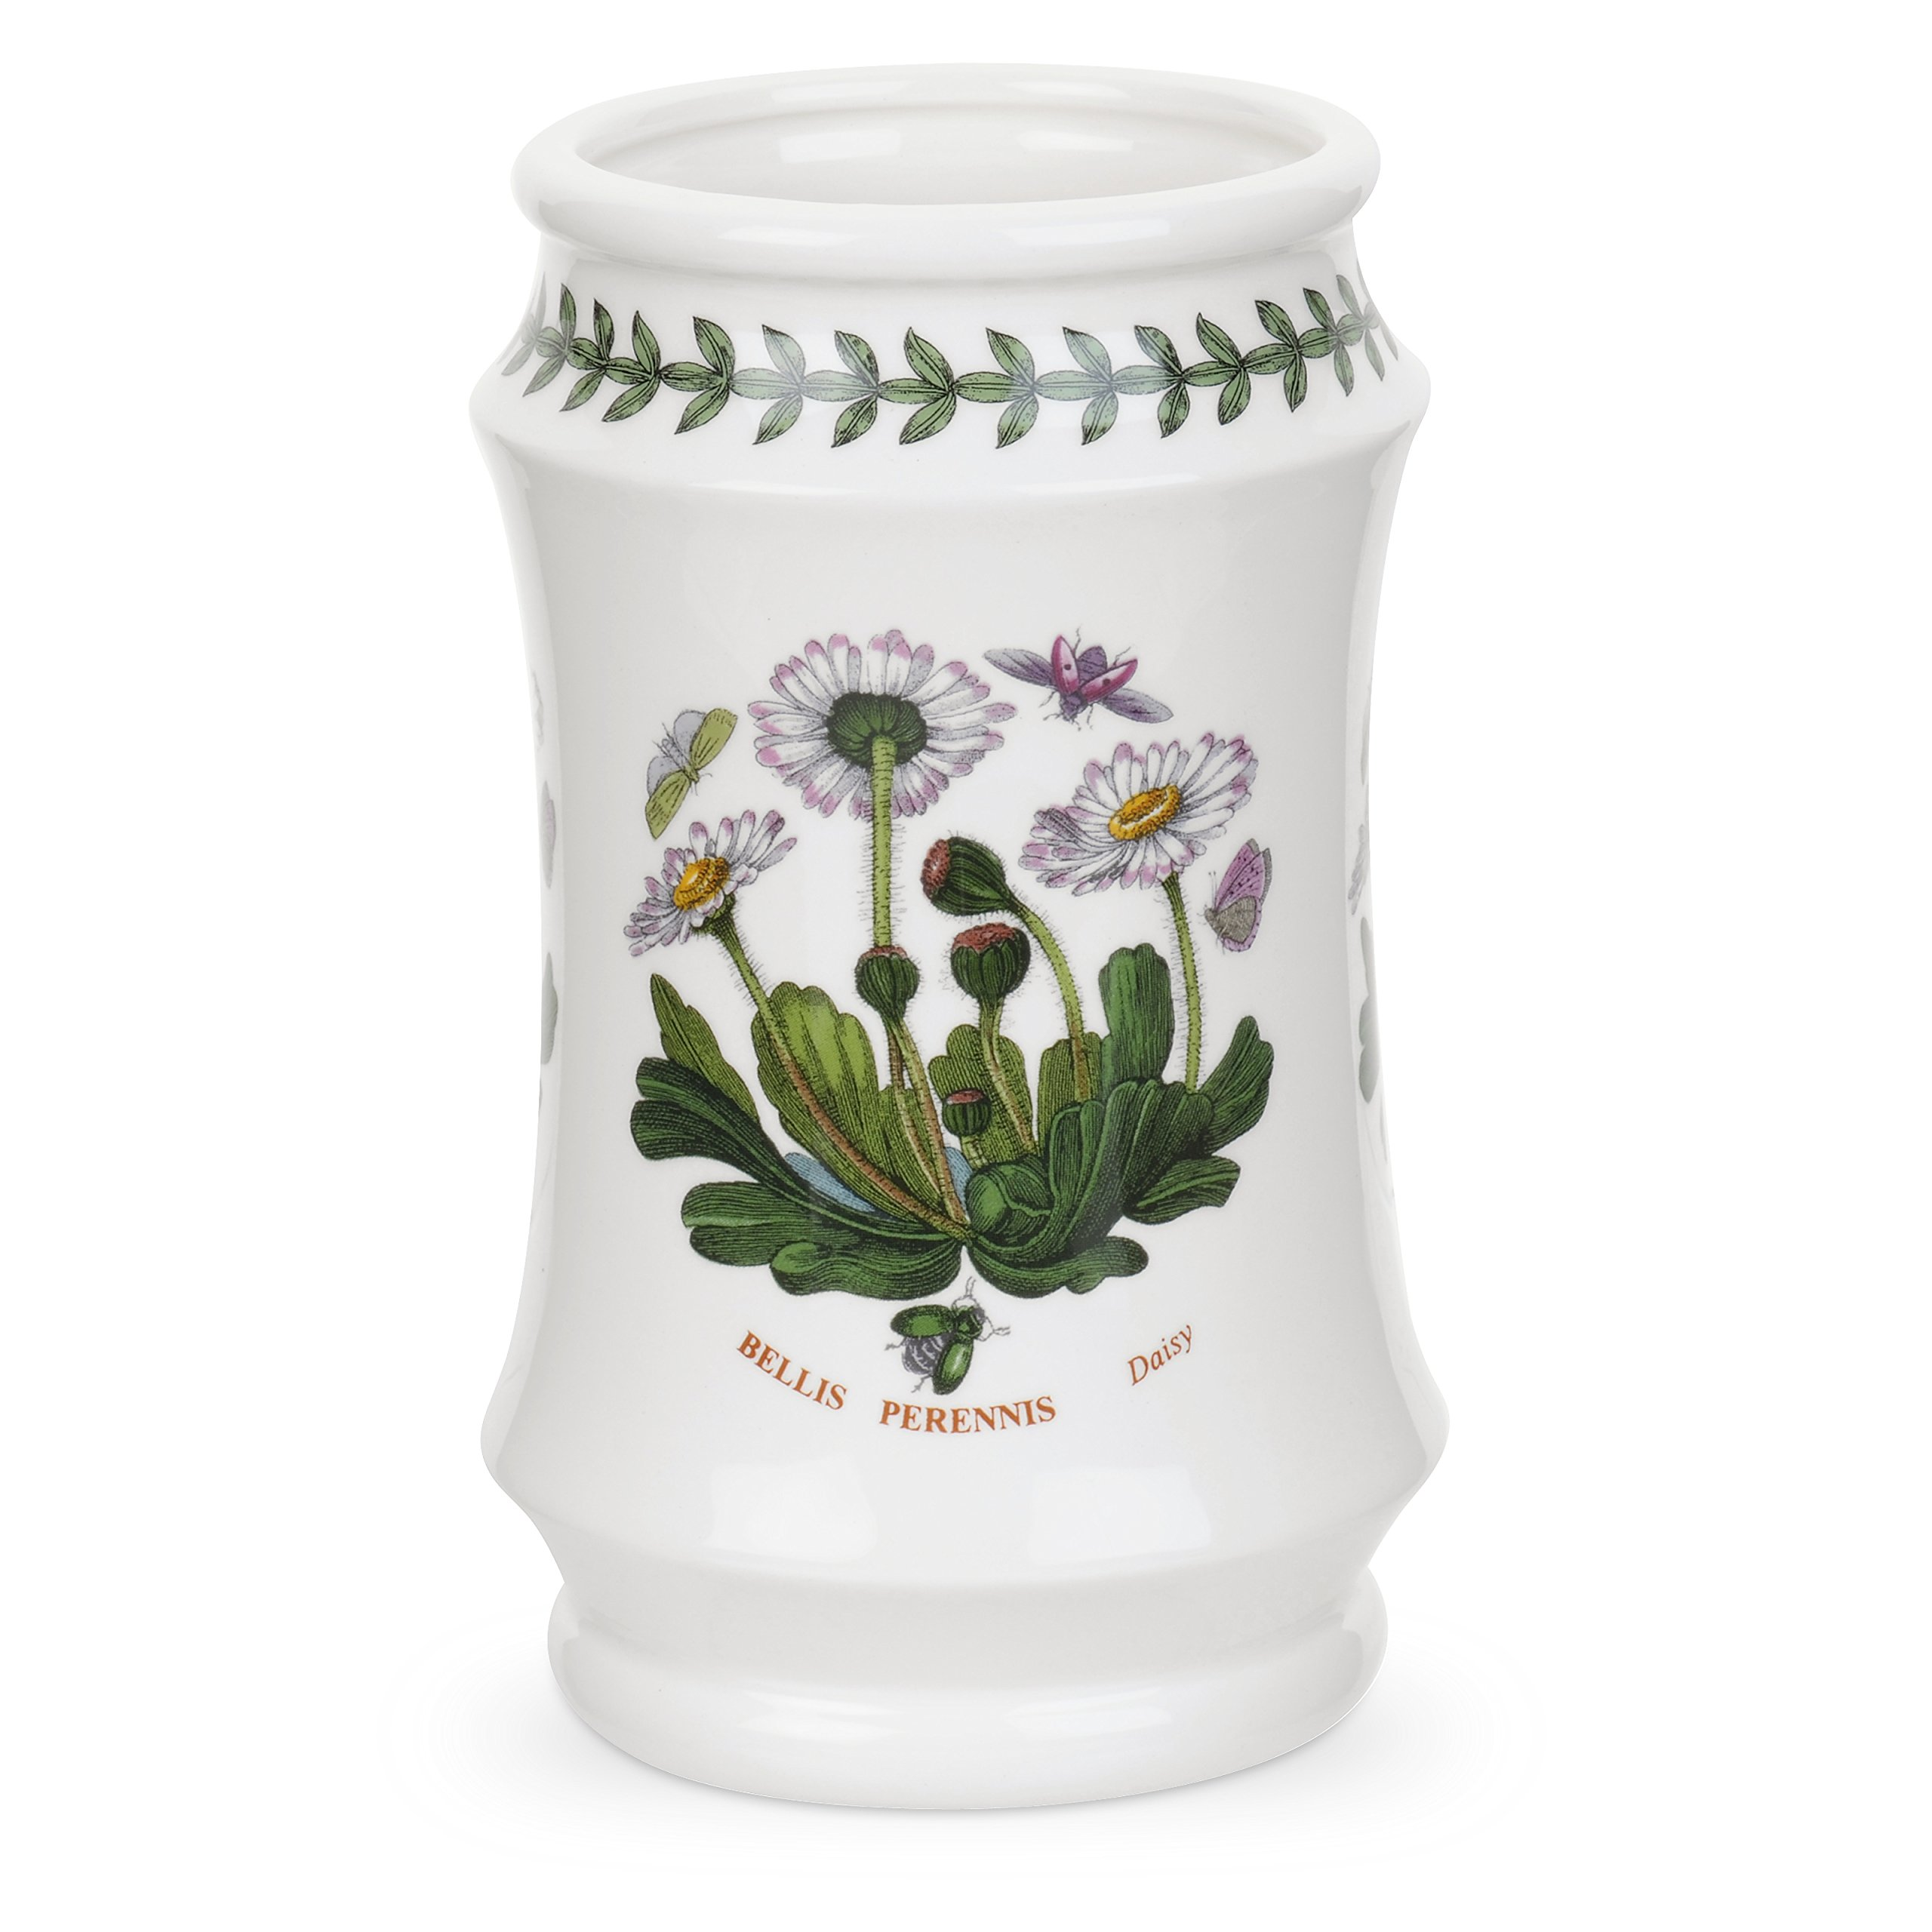 Portmeirion Botanic Garden Utensil Jar by Portmeirion